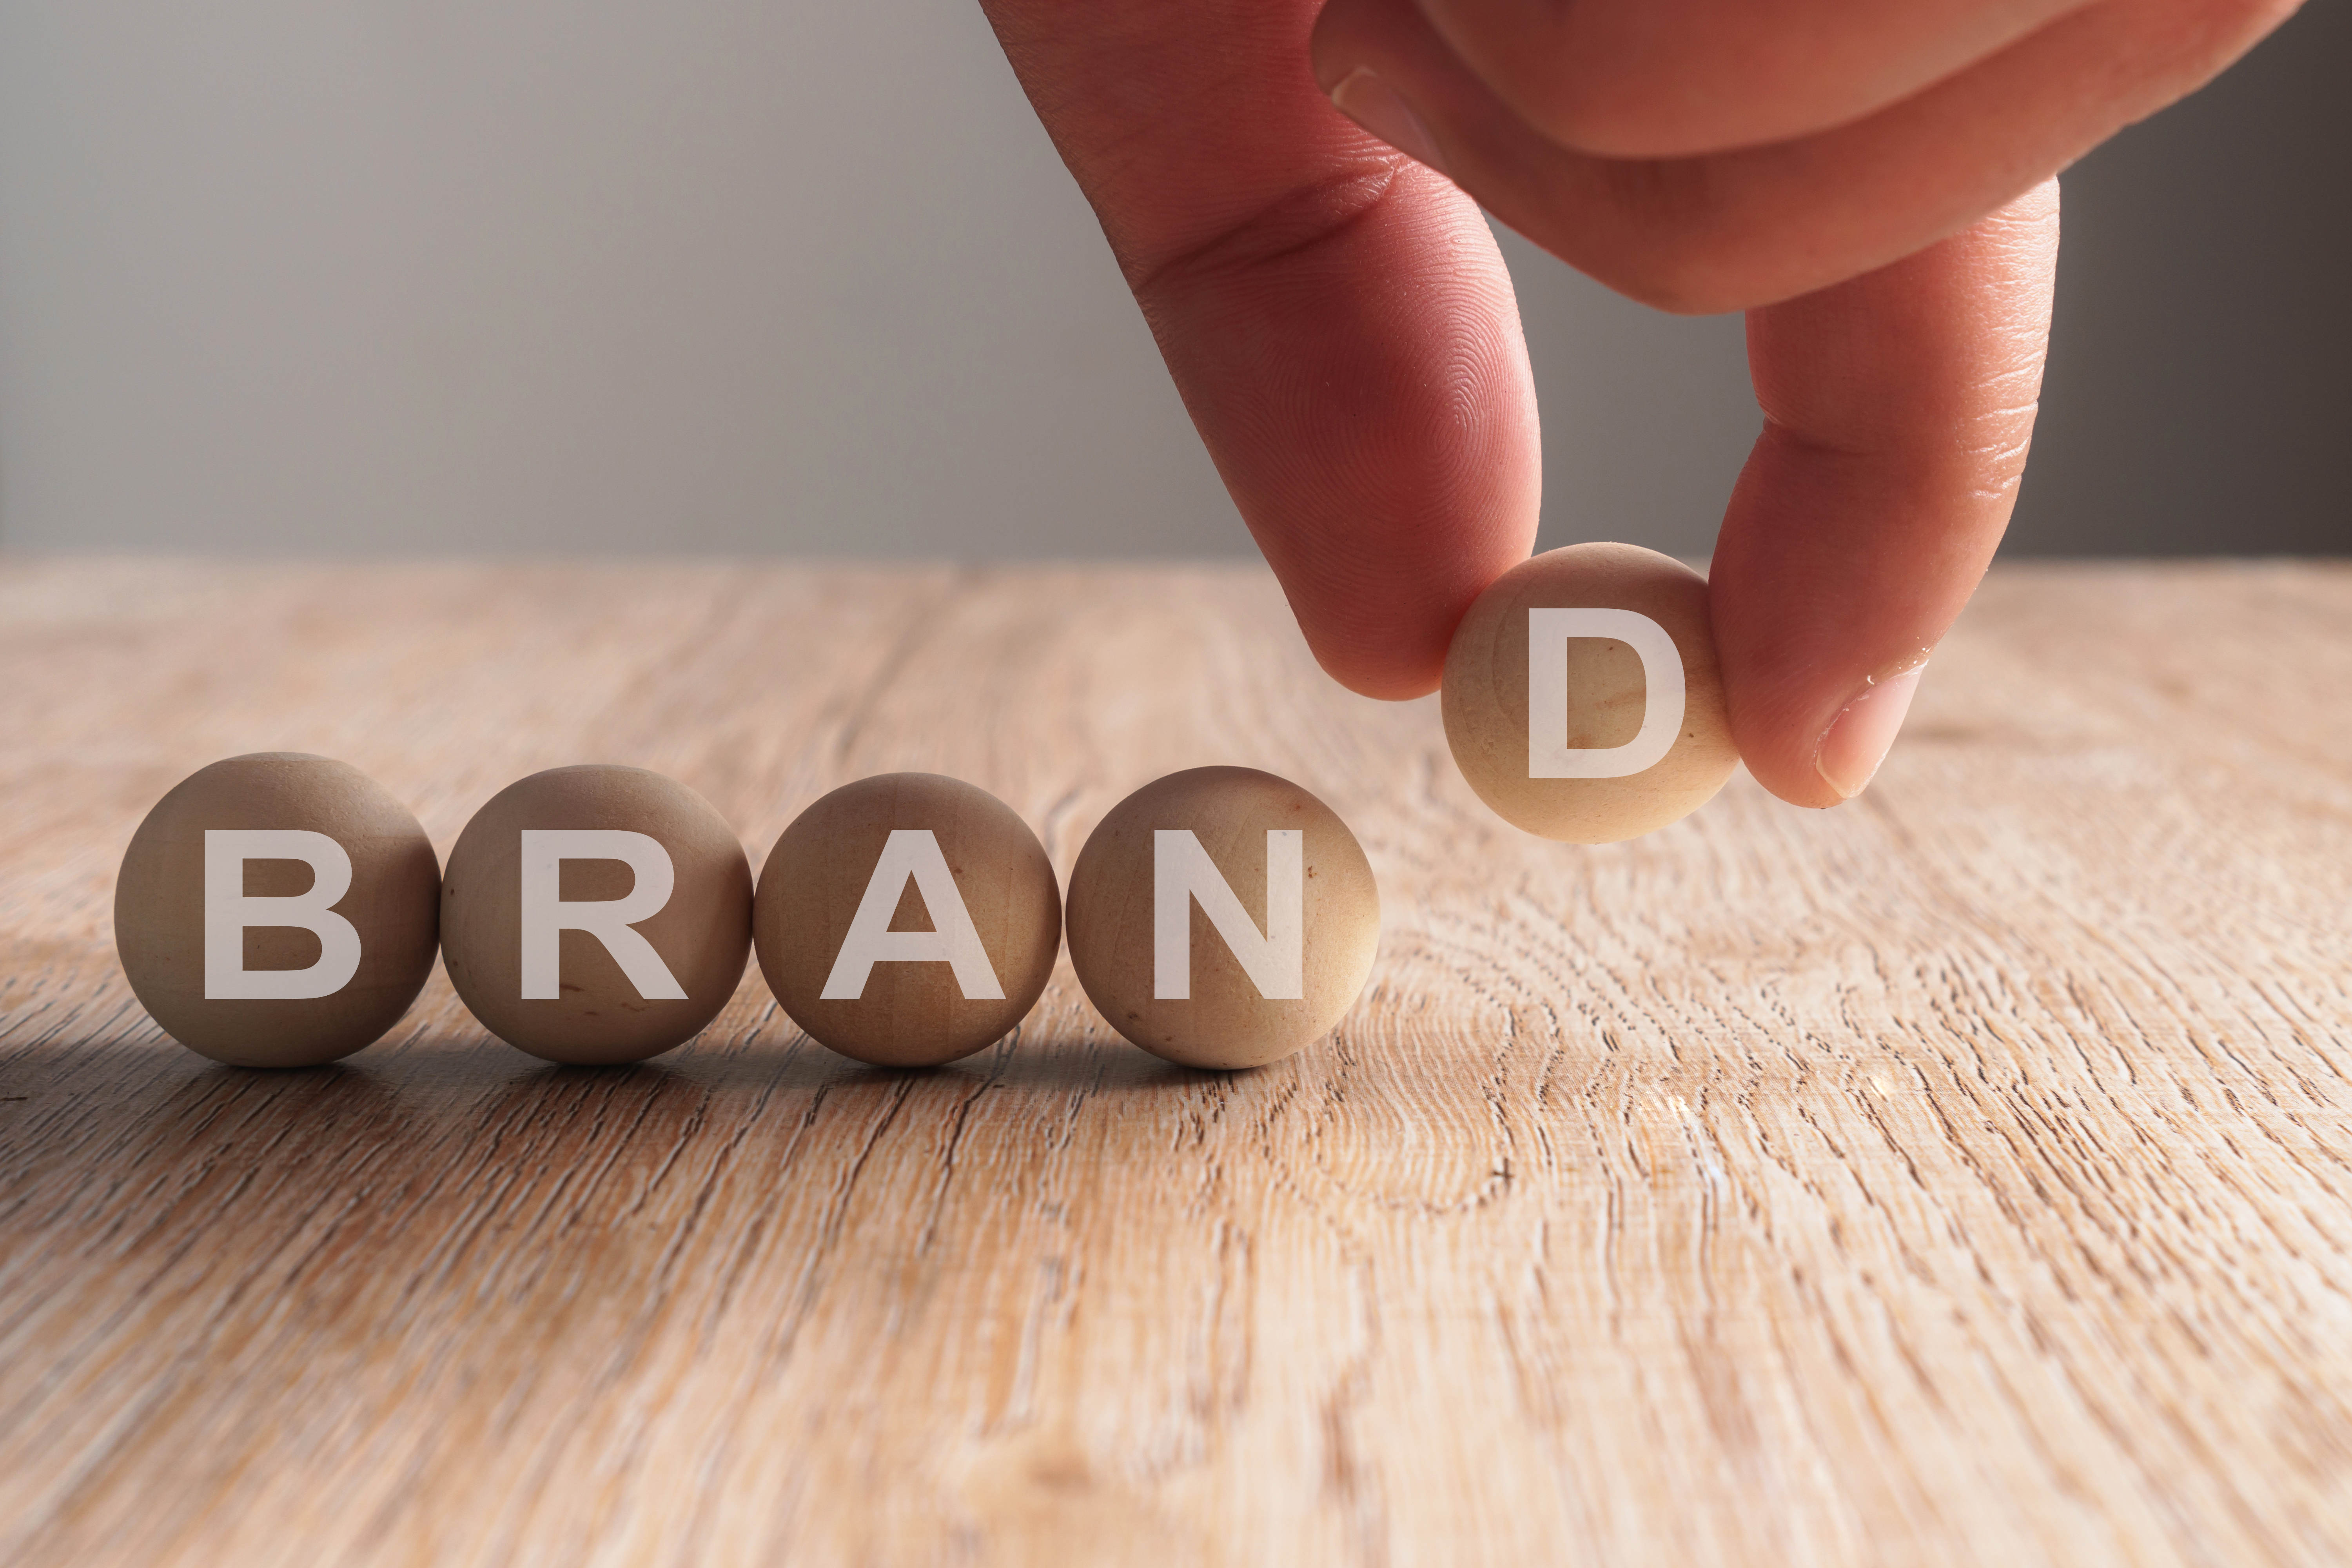 Deciding on a name for your independent agency